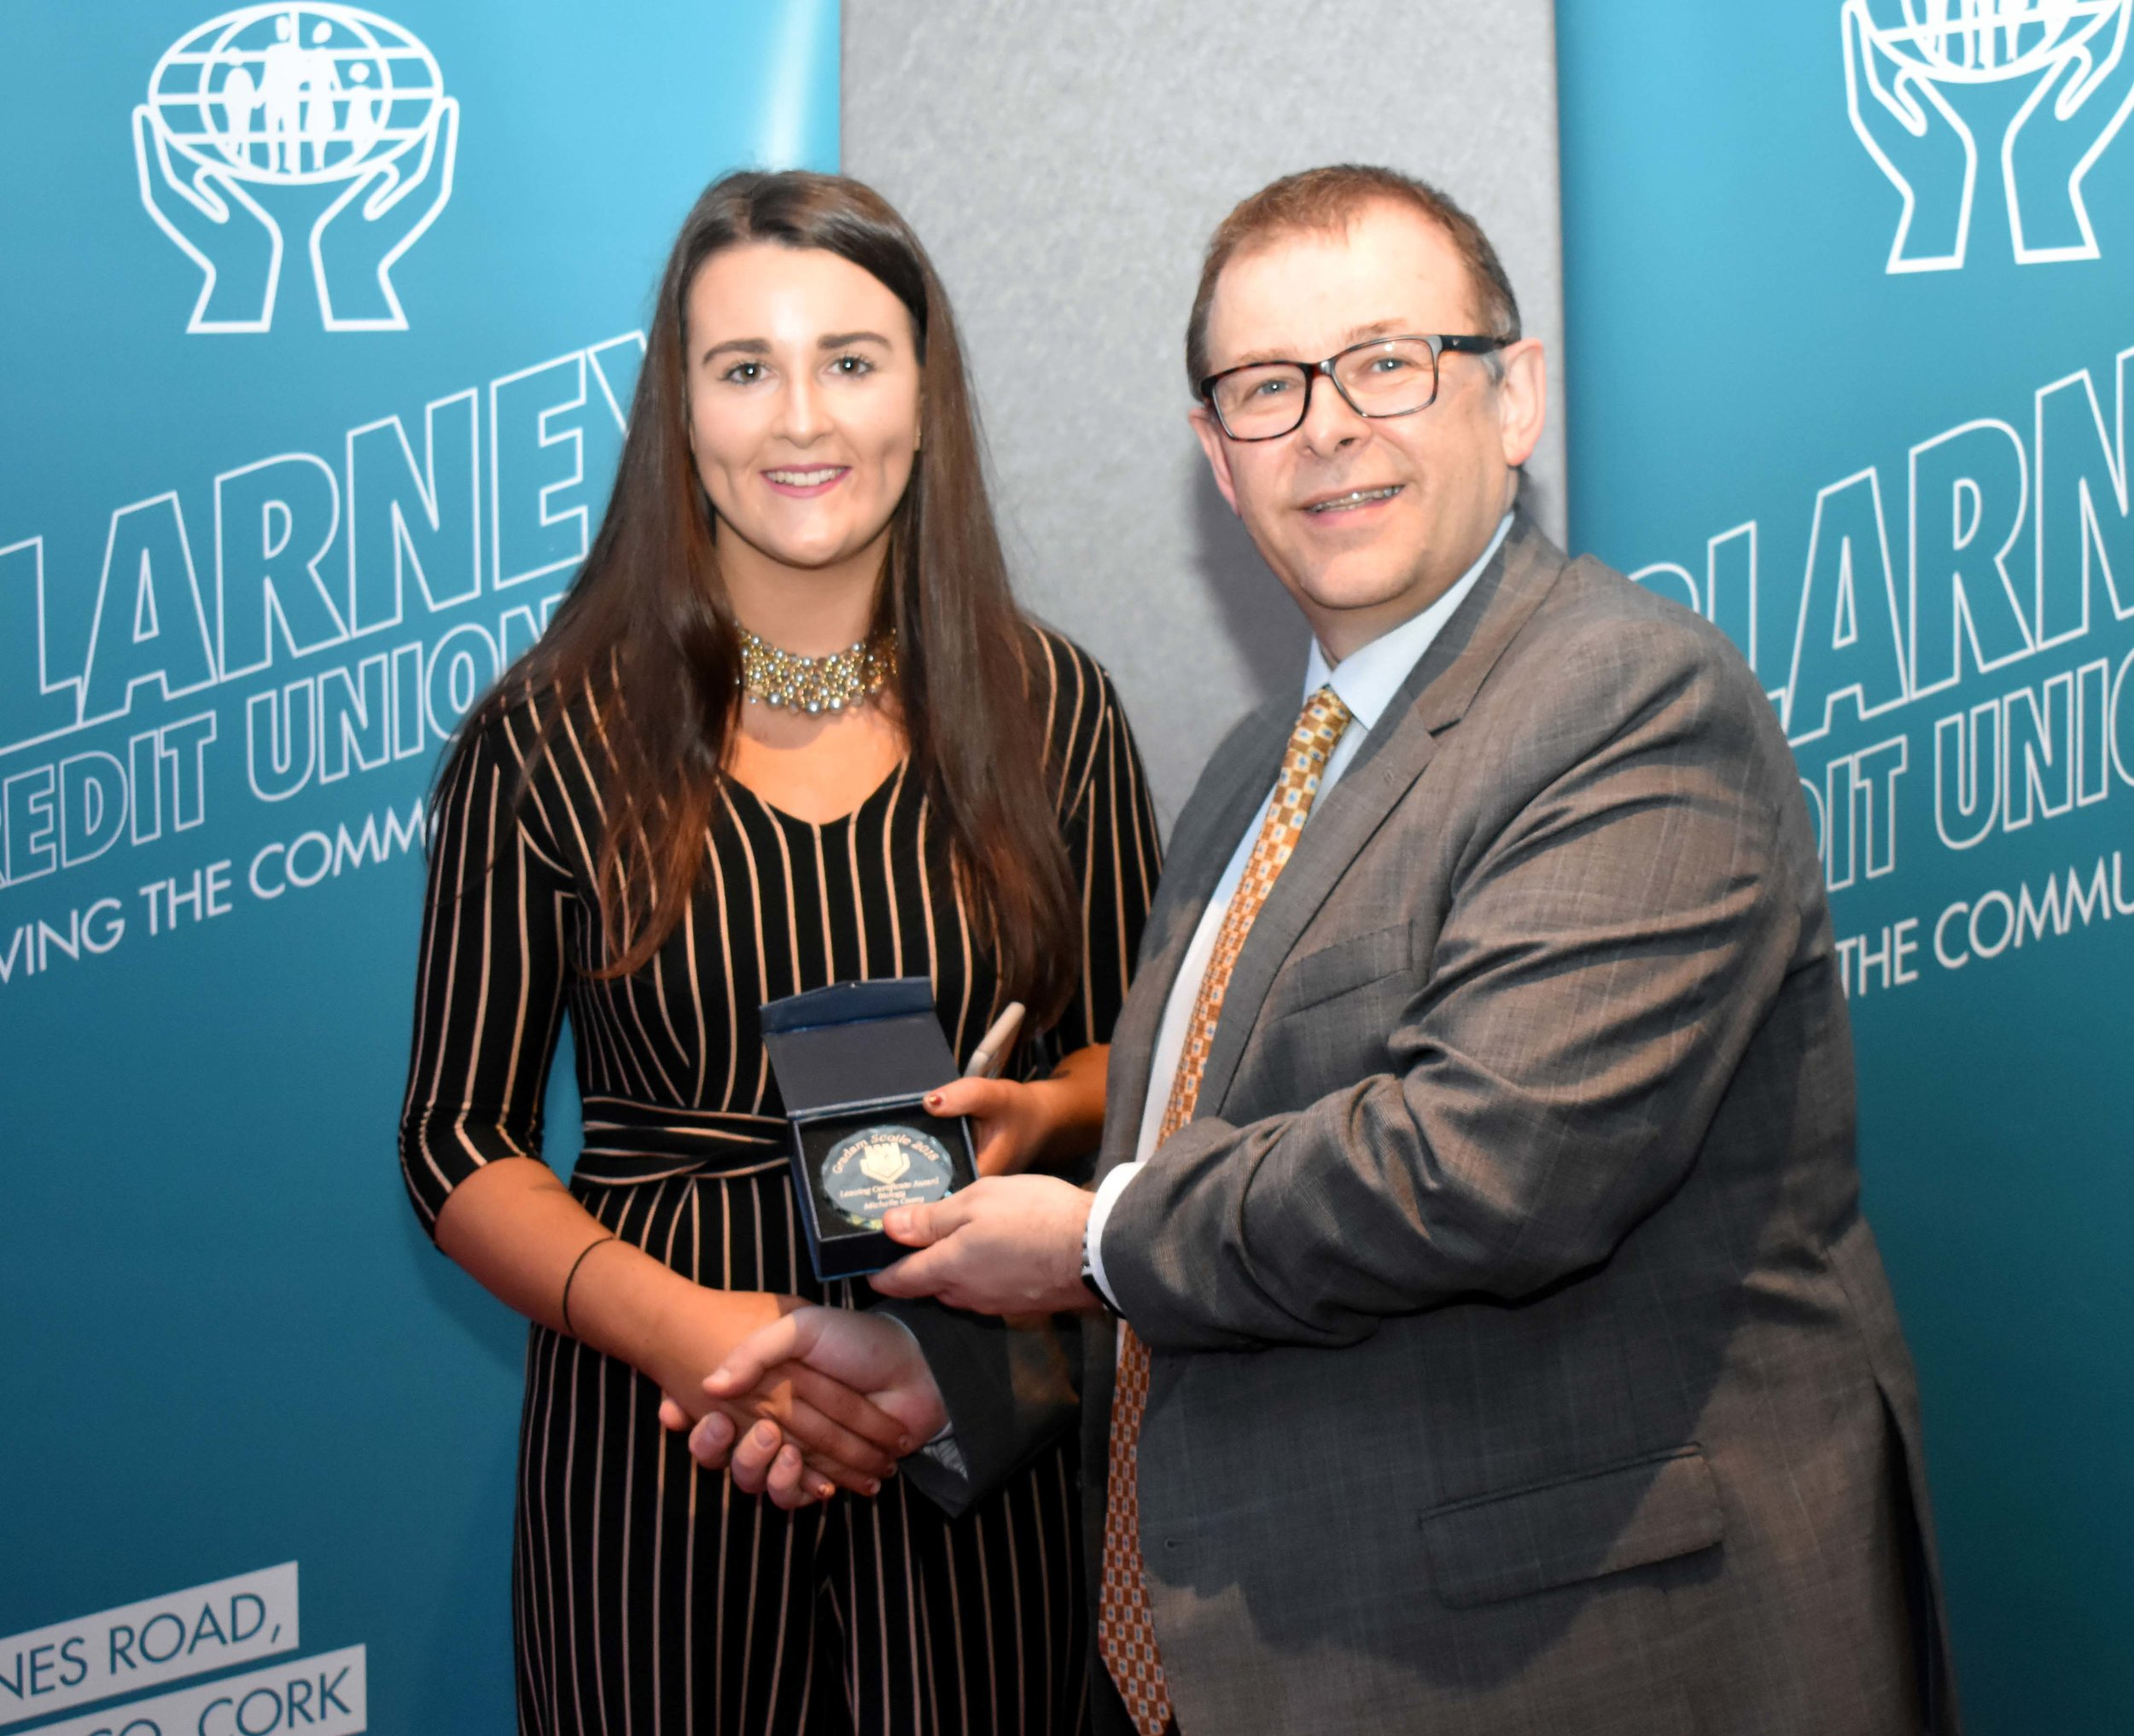 Senior Subject Award winner: Michelle Casey (Biology) (Pictured with Mr. Mark McGloughlin - BOM and Blarney Credit Union)